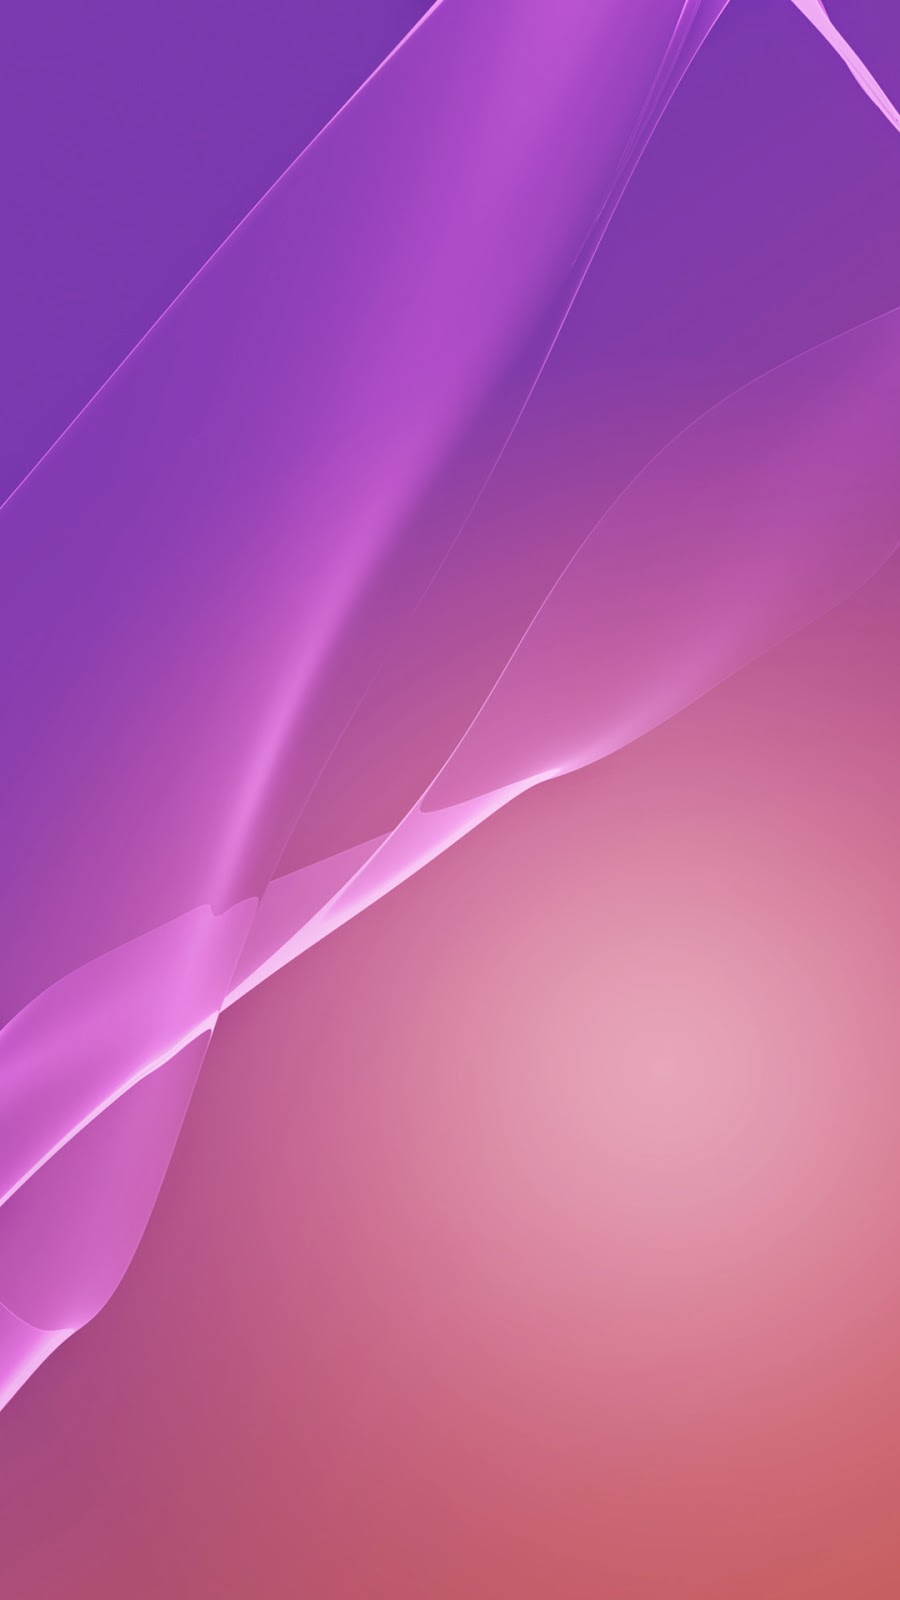 Sony Xperia Z2 Wallpapers